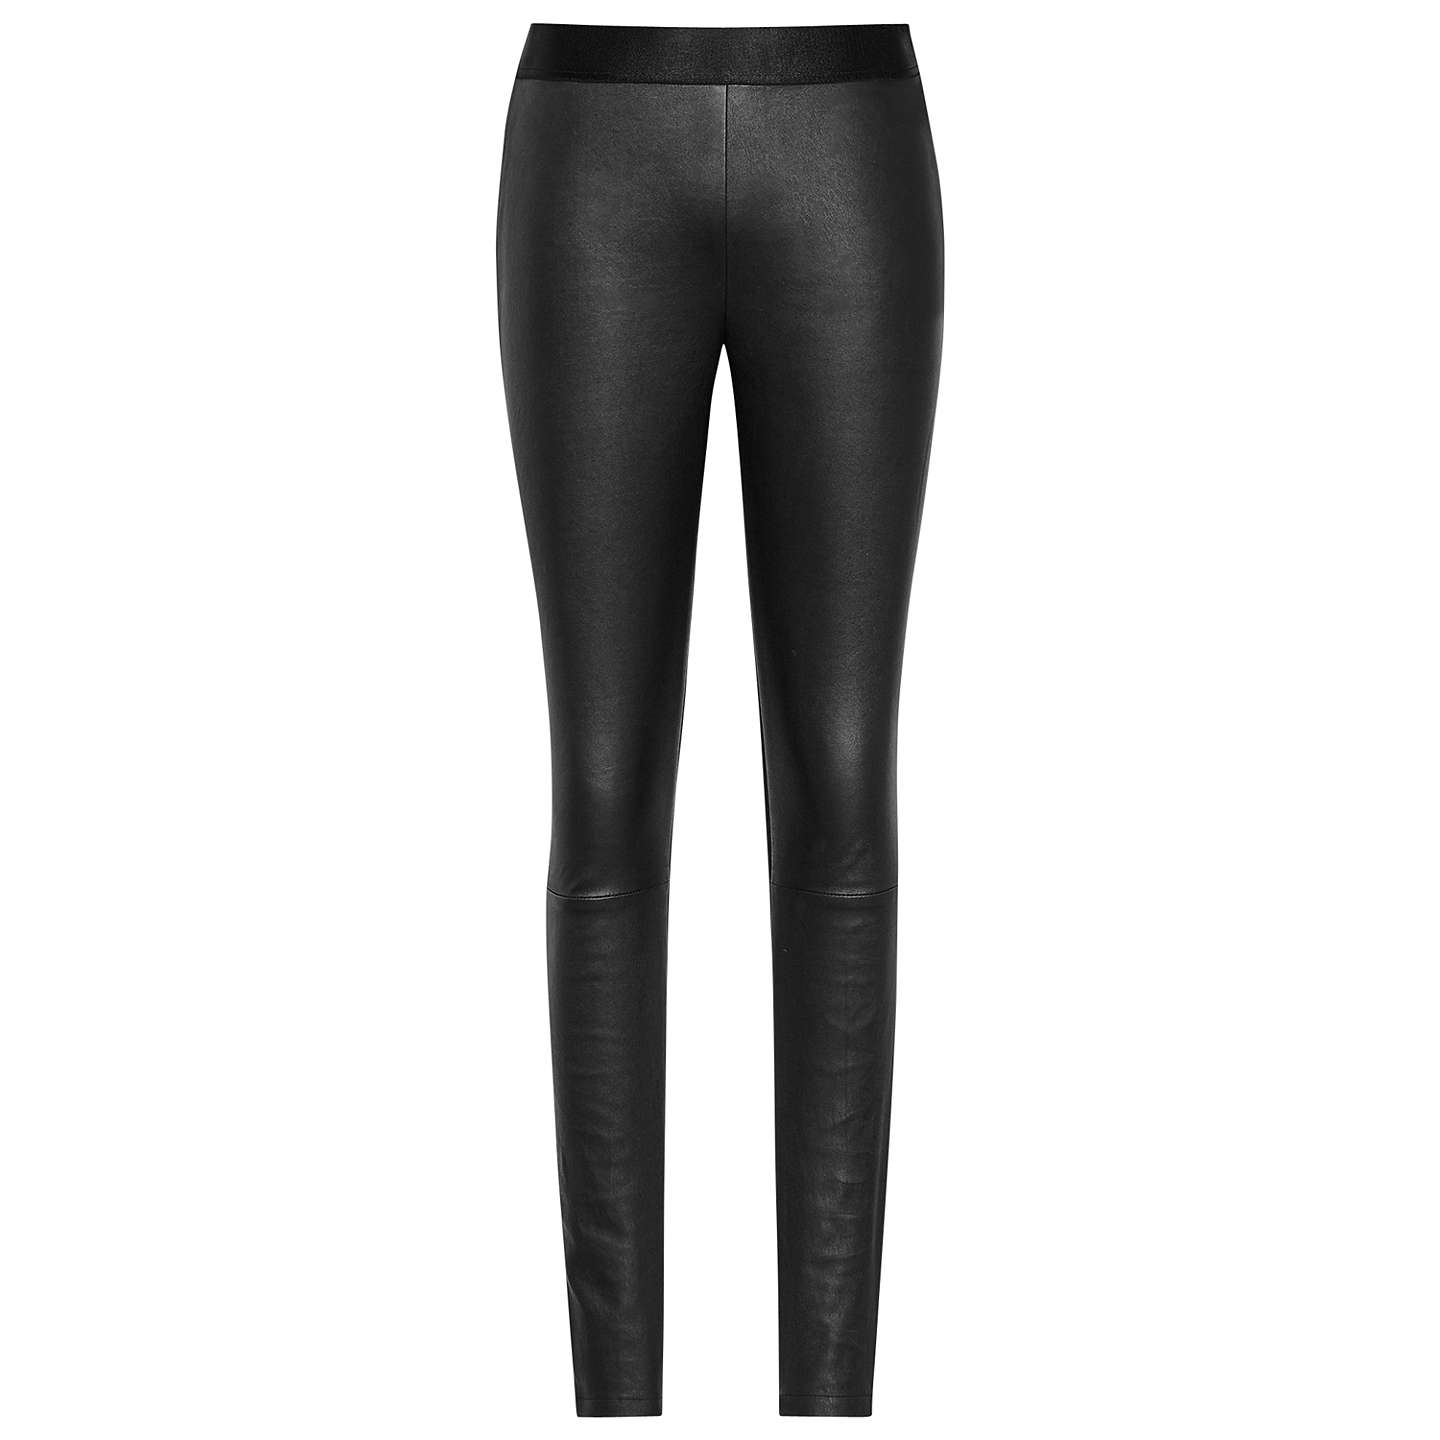 BuyReiss Knole Ponte Leather Mix Trousers, Black, 6 Online at johnlewis.com